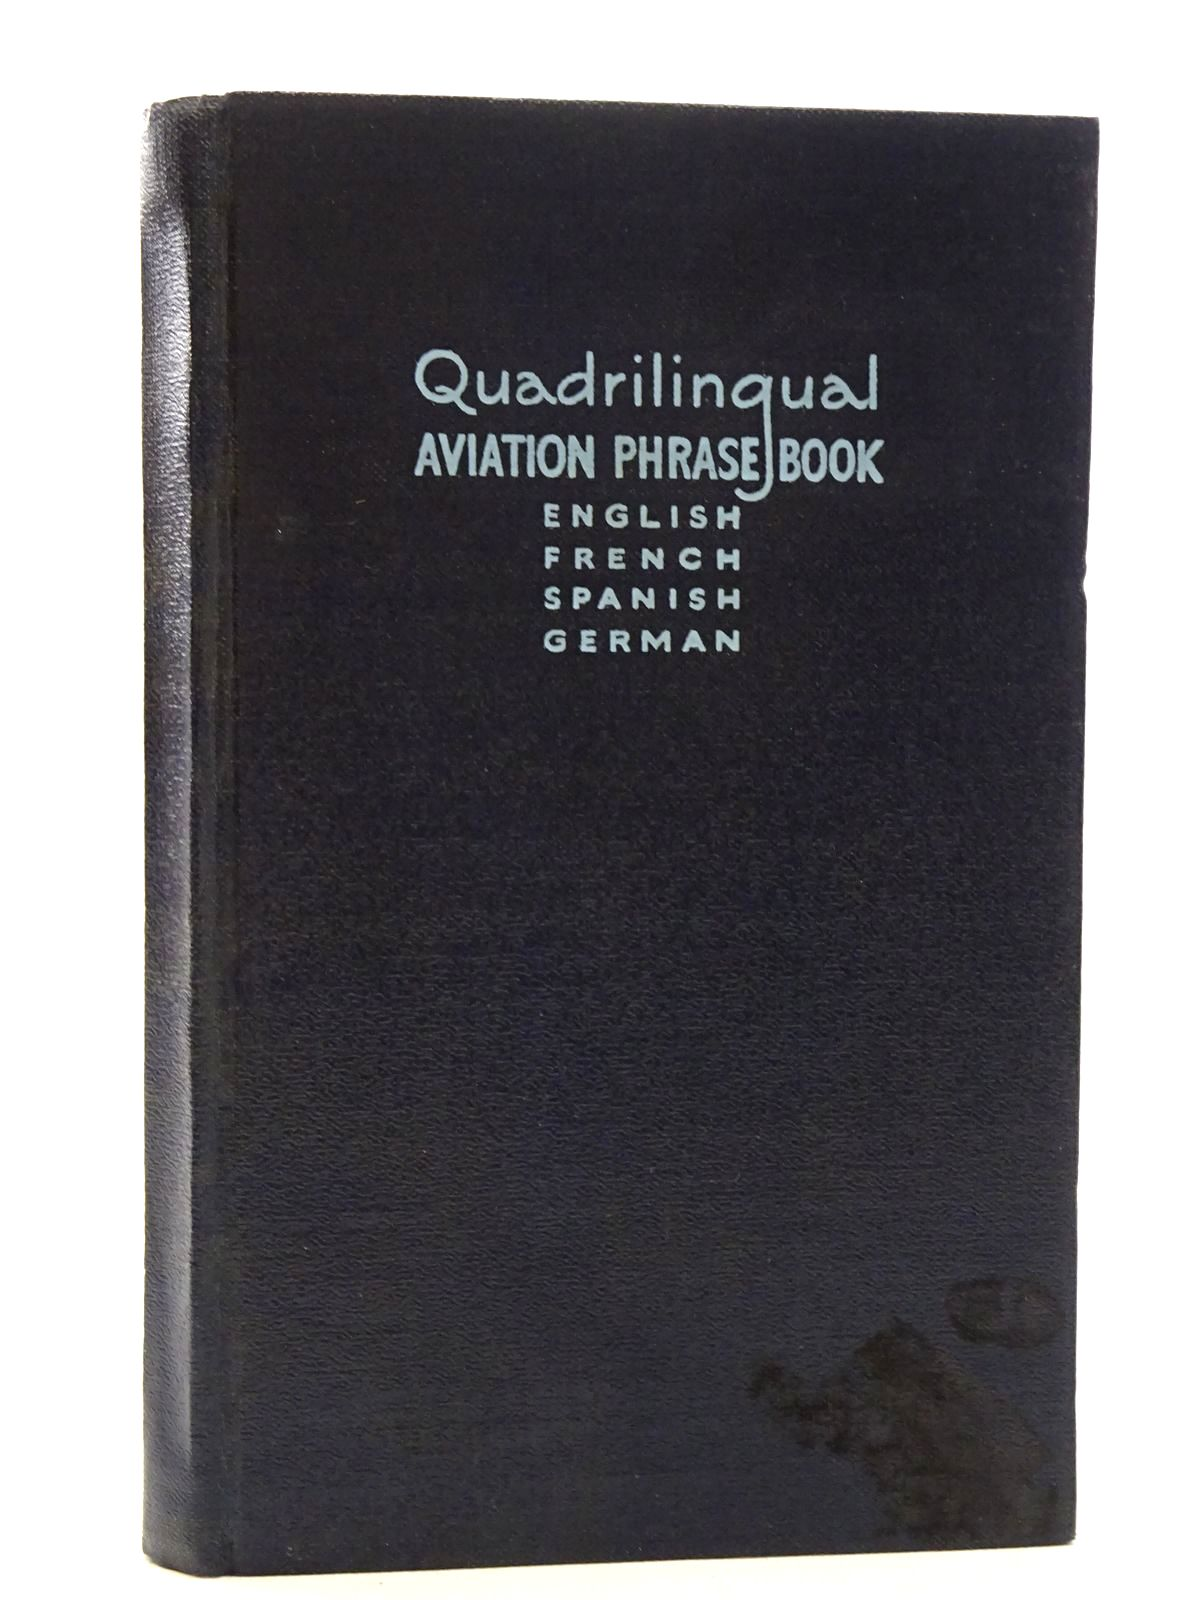 Photo of QUADRILINGUAL AVIATION PHRASE BOOK written by Day, H.J. published by Gale & Polden, Ltd. (STOCK CODE: 1610395)  for sale by Stella & Rose's Books